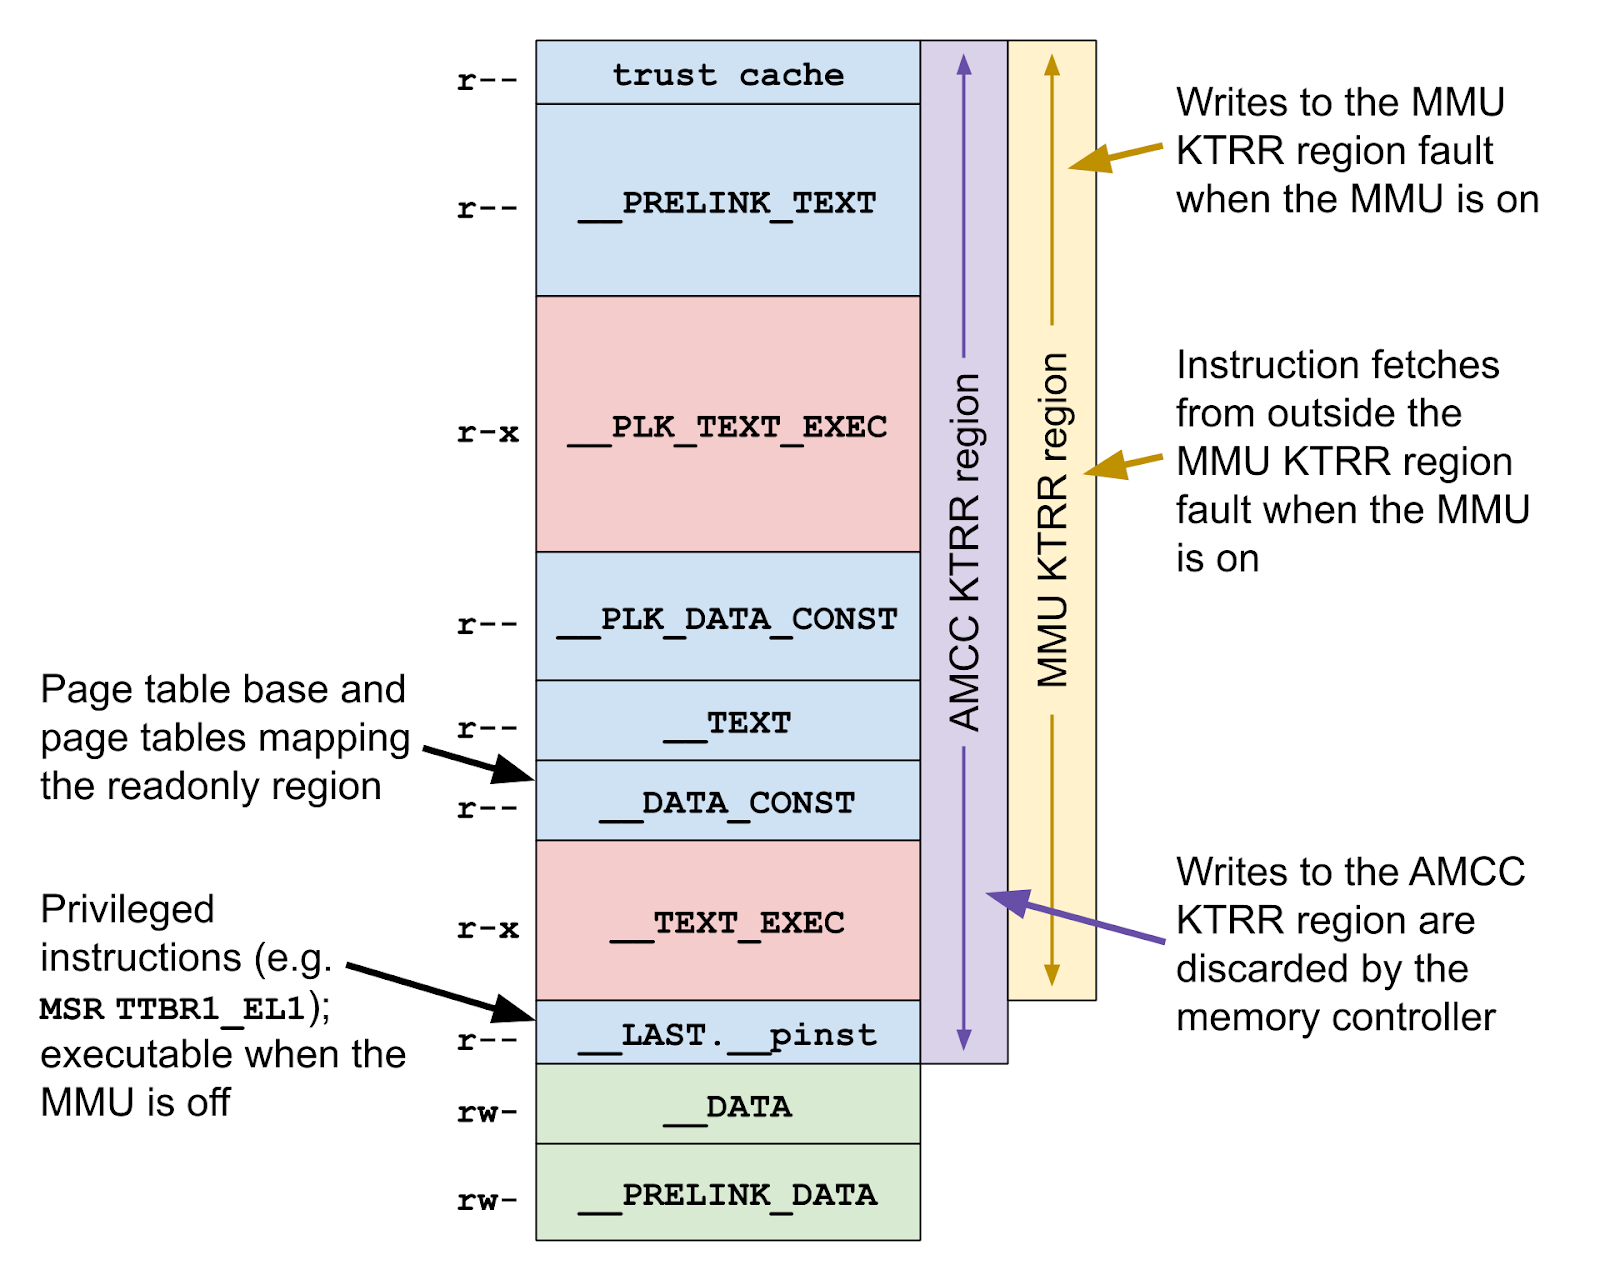 This is a diagram showing the inteactions between memory, AMCC KTRR and the MMU KTRR regions. On an A11 device, the MMU KTRR region protects all kernel const data except __LAST.__pinst, for example __PRELINK_TEXT, __DATA_CONST, and __TEXT_EXEC are protected. Any writes to the MMU KTRR region and any instruction fetches from outside the MMU KTRR region fault. The AMCC KTRR region is the same as the MMU KTRR region, plus it includes __LAST.__pinst. Any writes to the AMCC KTRR region are discarded at the memory controller. The page tables live in __DATA_CONST, where they are protected by both KTRR regions. Privileged instructions like MSR TTBR1_EL1 reside in __LAST.__pinst and are only protected by the AMCC KTRR region.